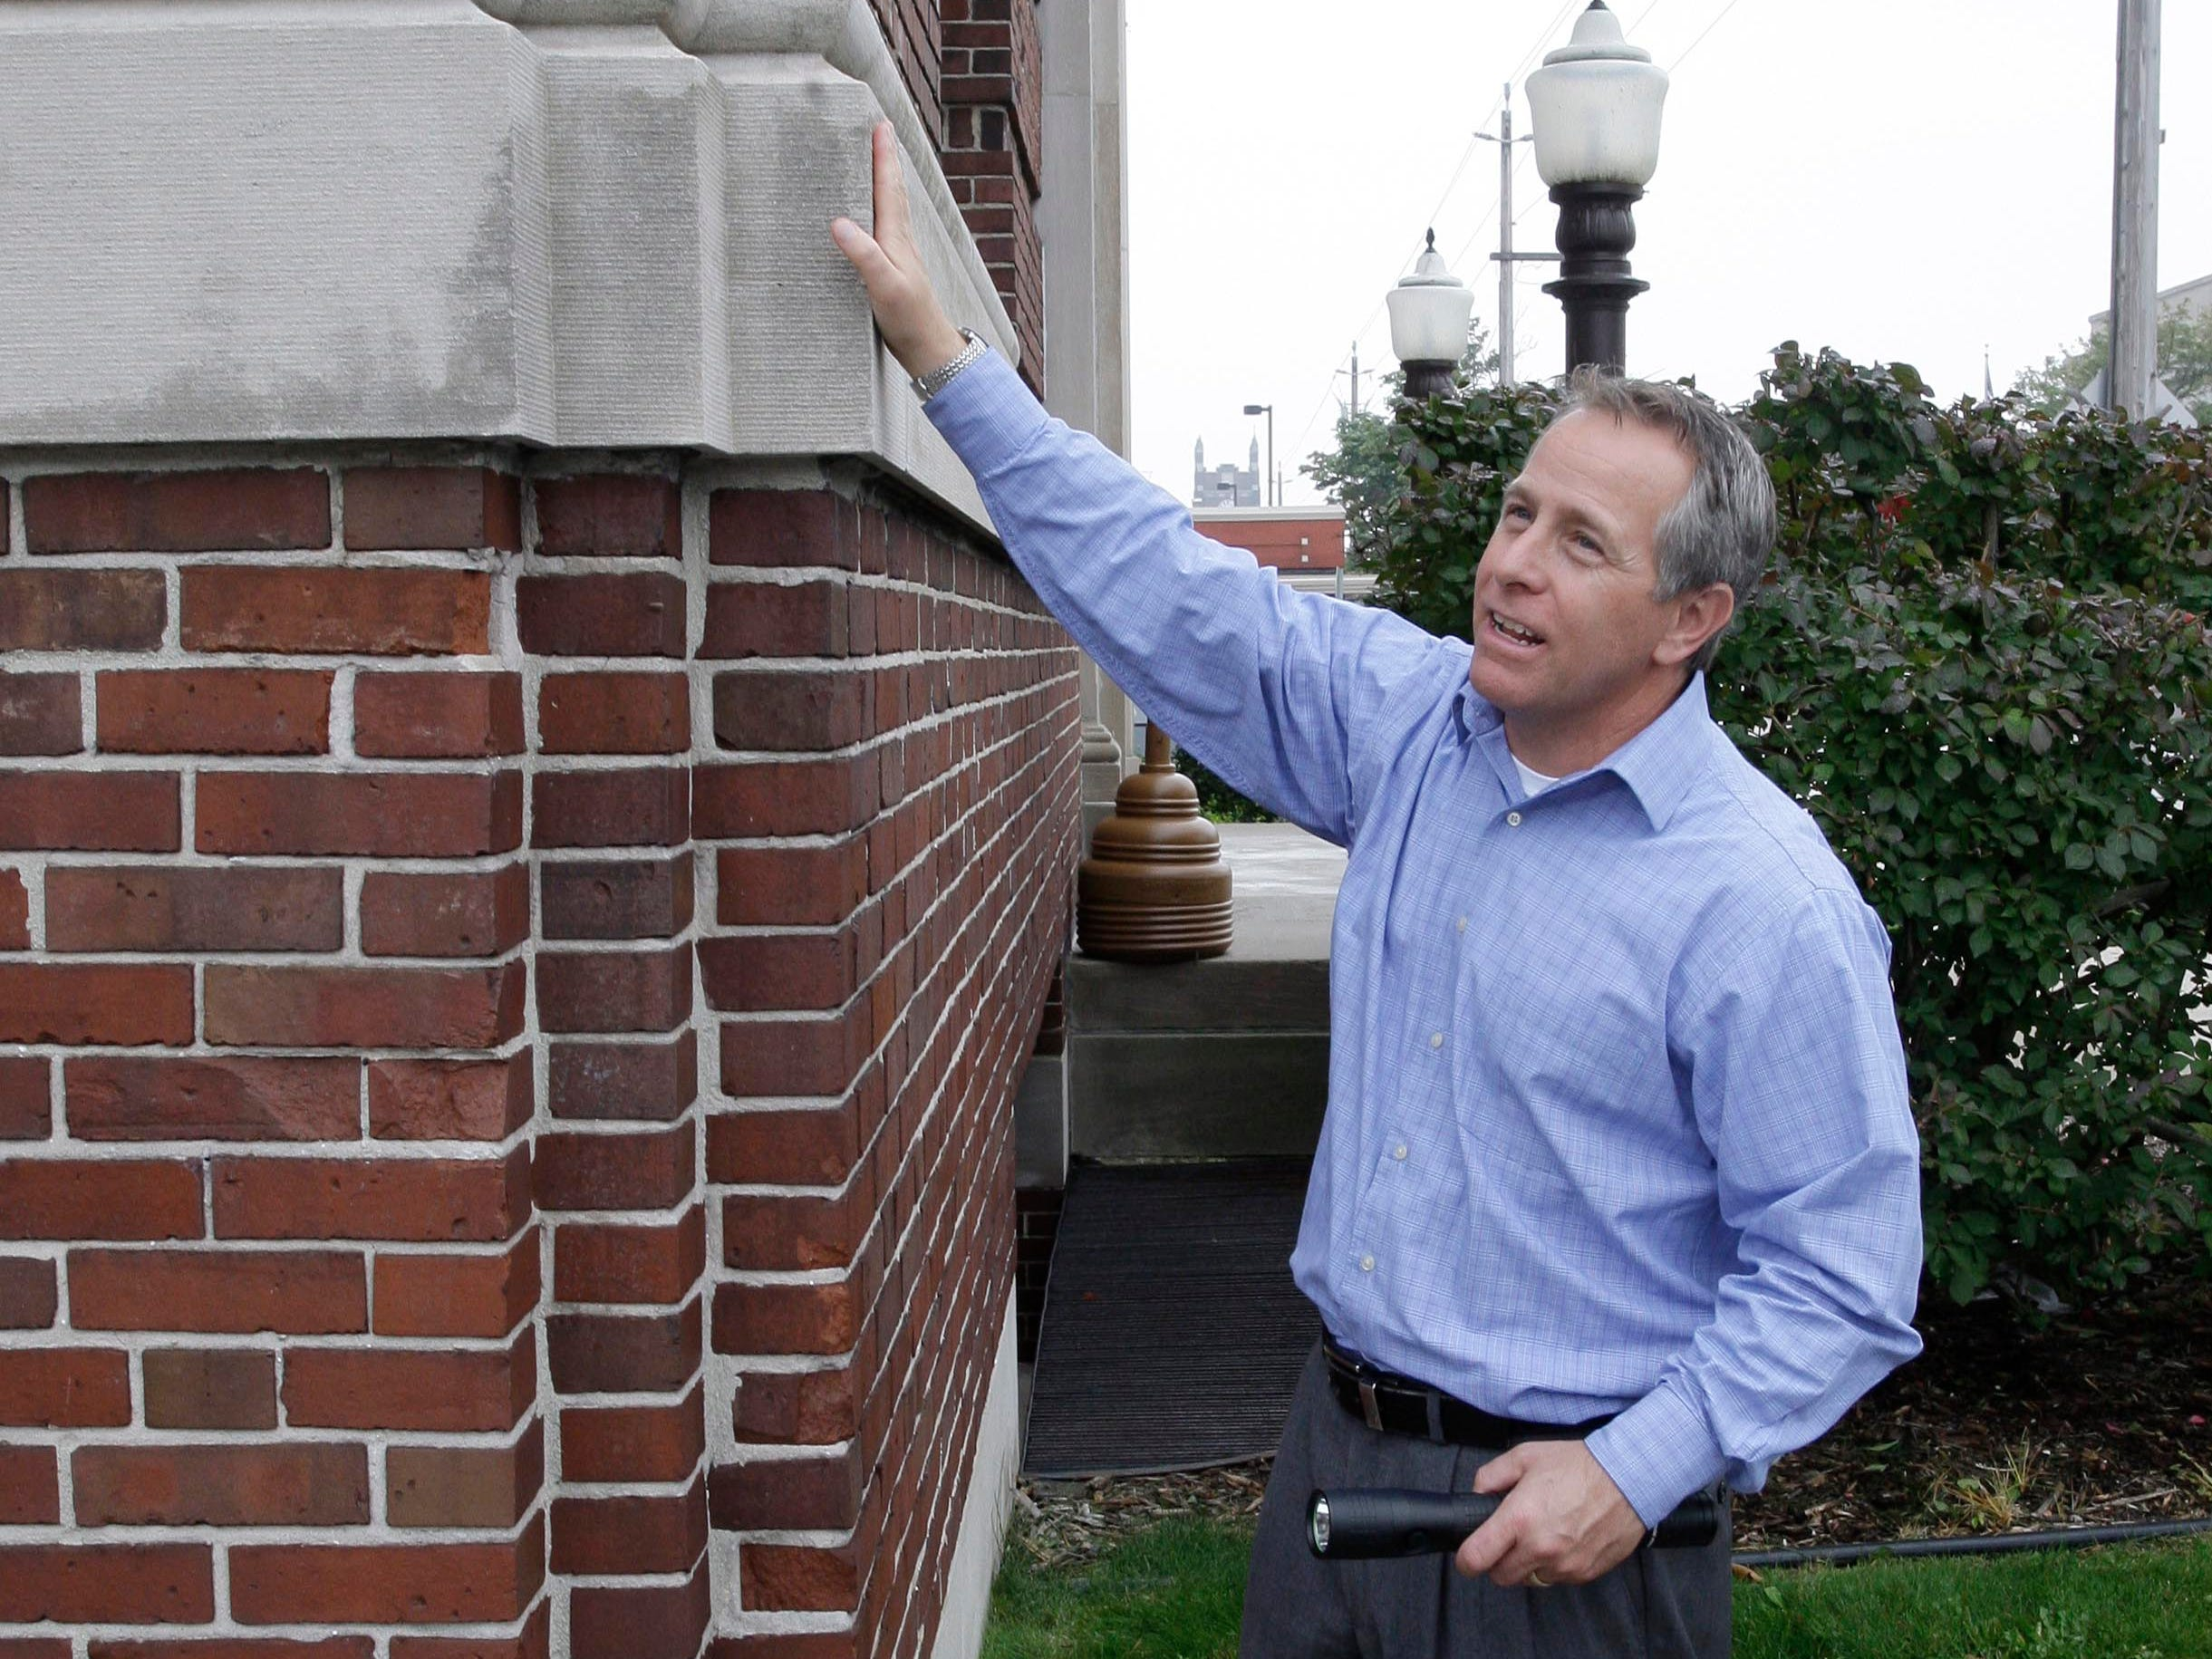 Director of Public Works David Biebel points out an architectural detail on the exterior of city hall, Thursday October 2, 2014, in Sheboygan, Wis.